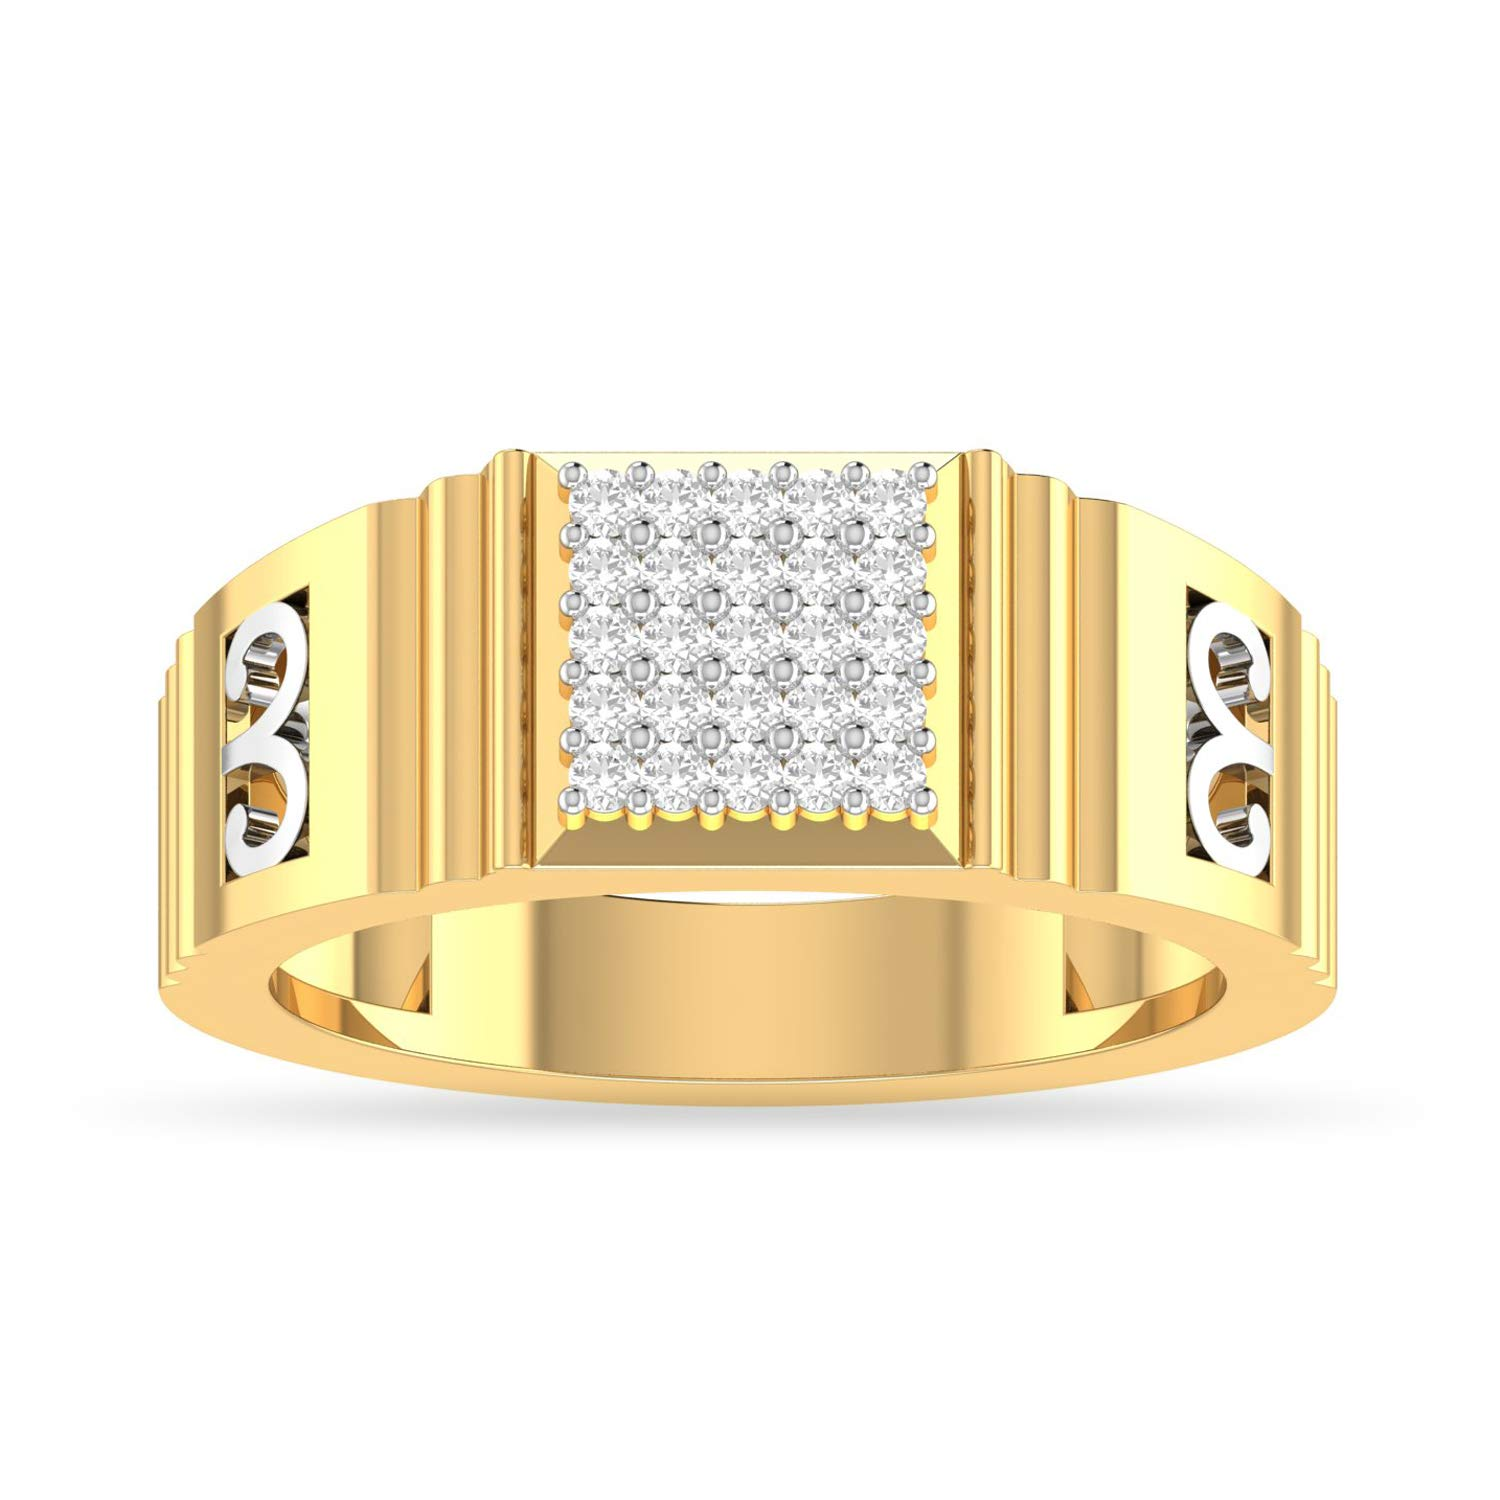 981351a20 Buy PC Jeweller The Adrian 18KT Yellow Gold & Diamond Rings Online at Low  Prices in India | Amazon Jewellery Store - Amazon.in